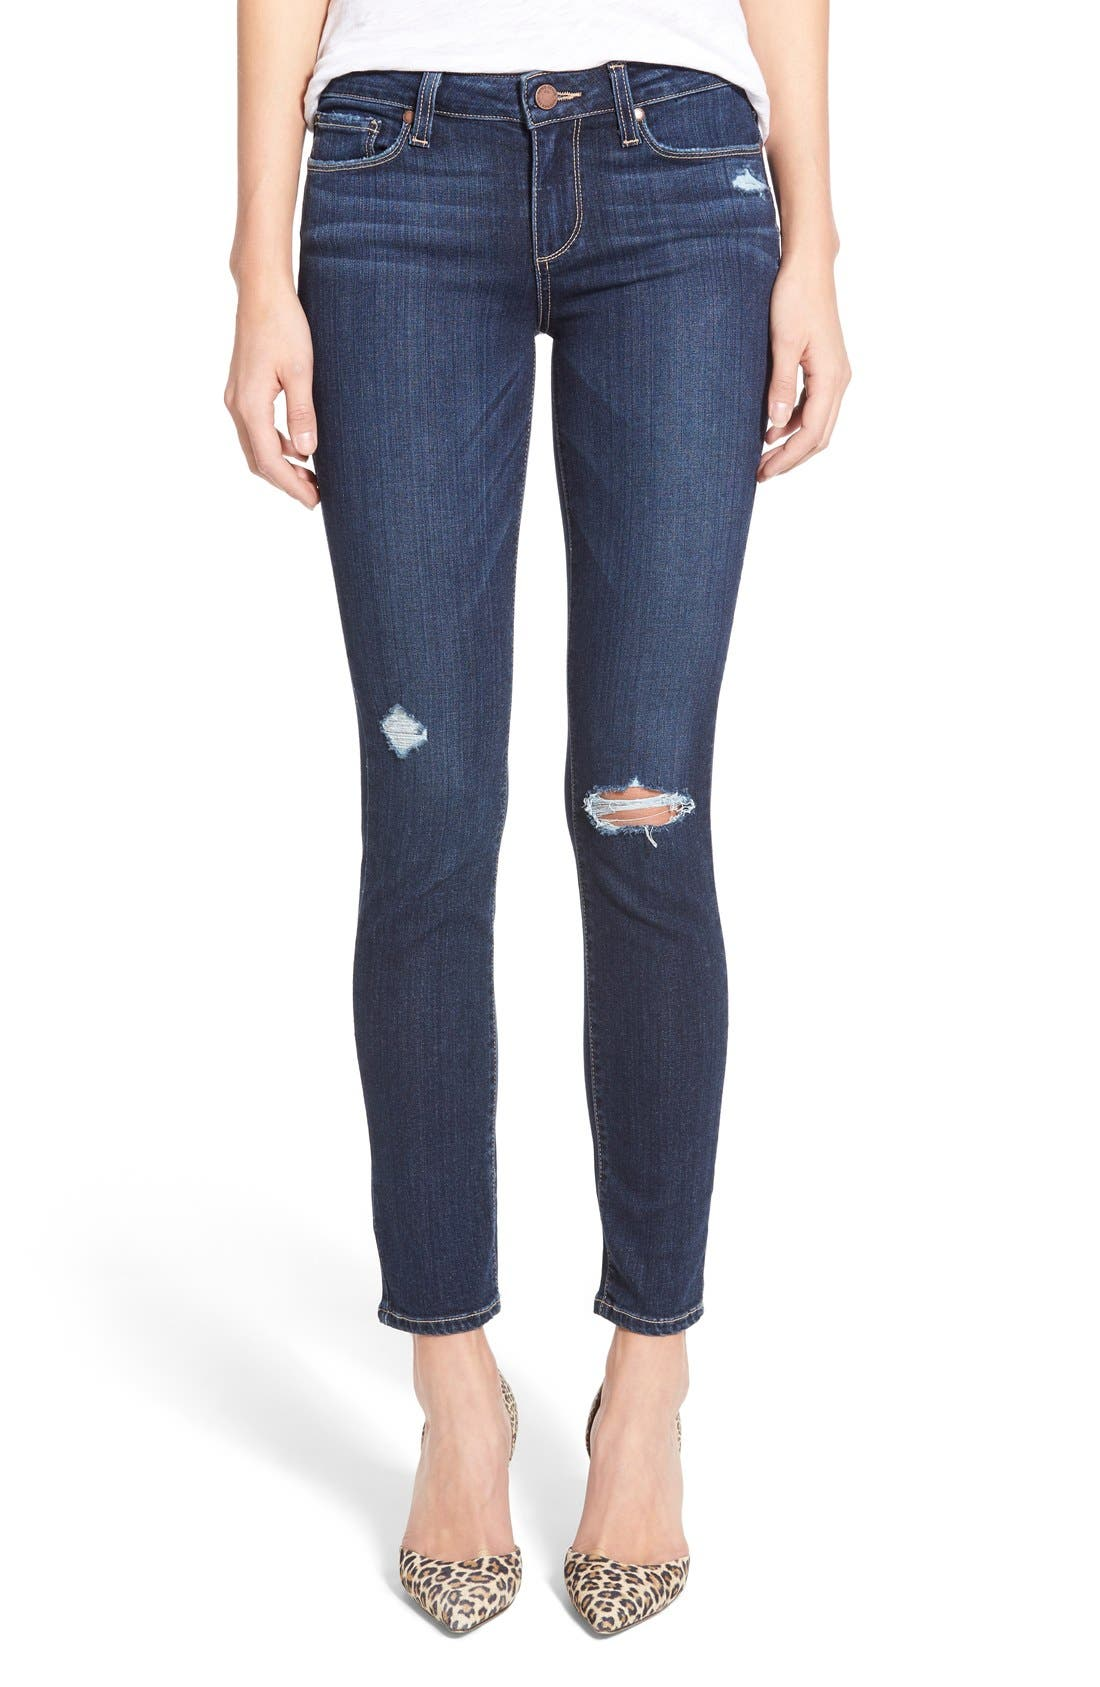 Alternate Image 1 Selected - Paige Denim 'Skyline' Ankle Peg Jeans (Elia Deconstructed)